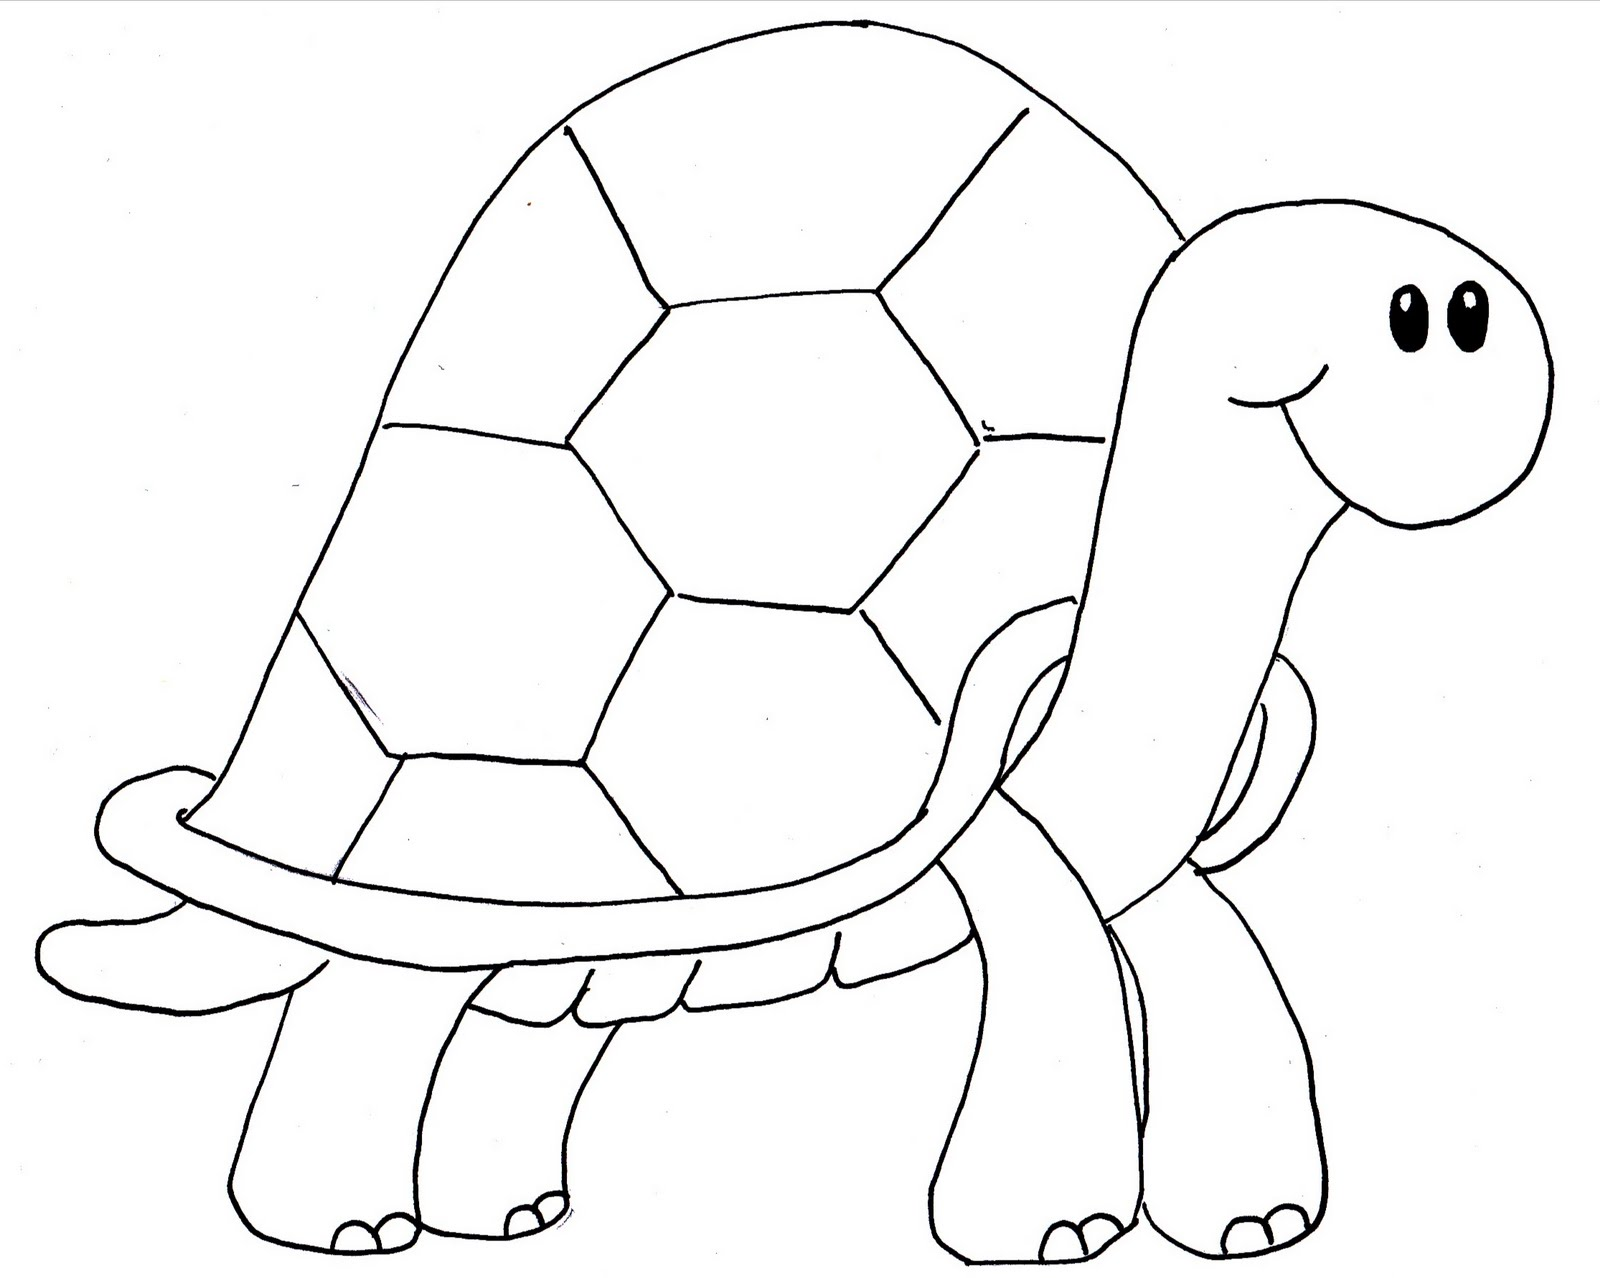 Lovely Small Pets The Shaped Used To Draw Turtles